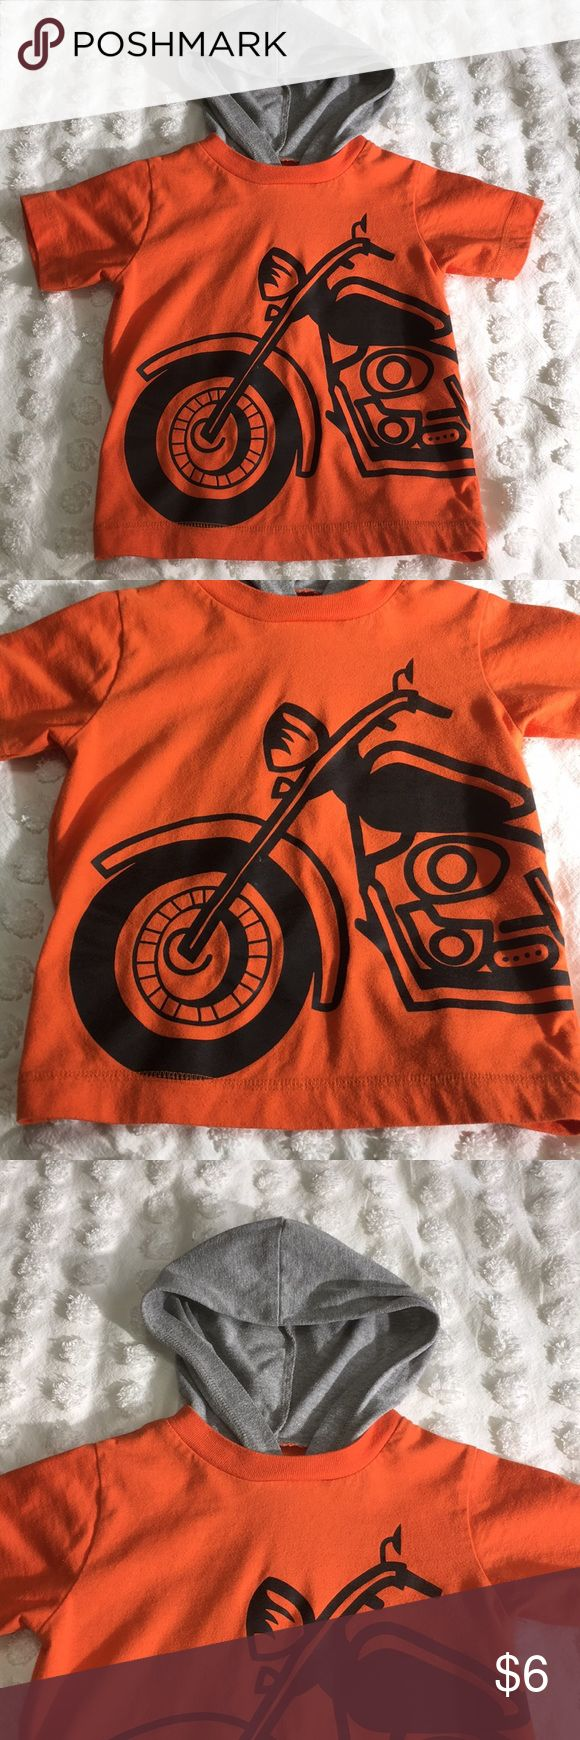 Orange short sleeve motorcycle hooded T-shirt VGUC orange short sleeve T-shirt with black motorcycle graphic on front features grey built in hood. Super cute Shirts & Tops Tees - Short Sleeve